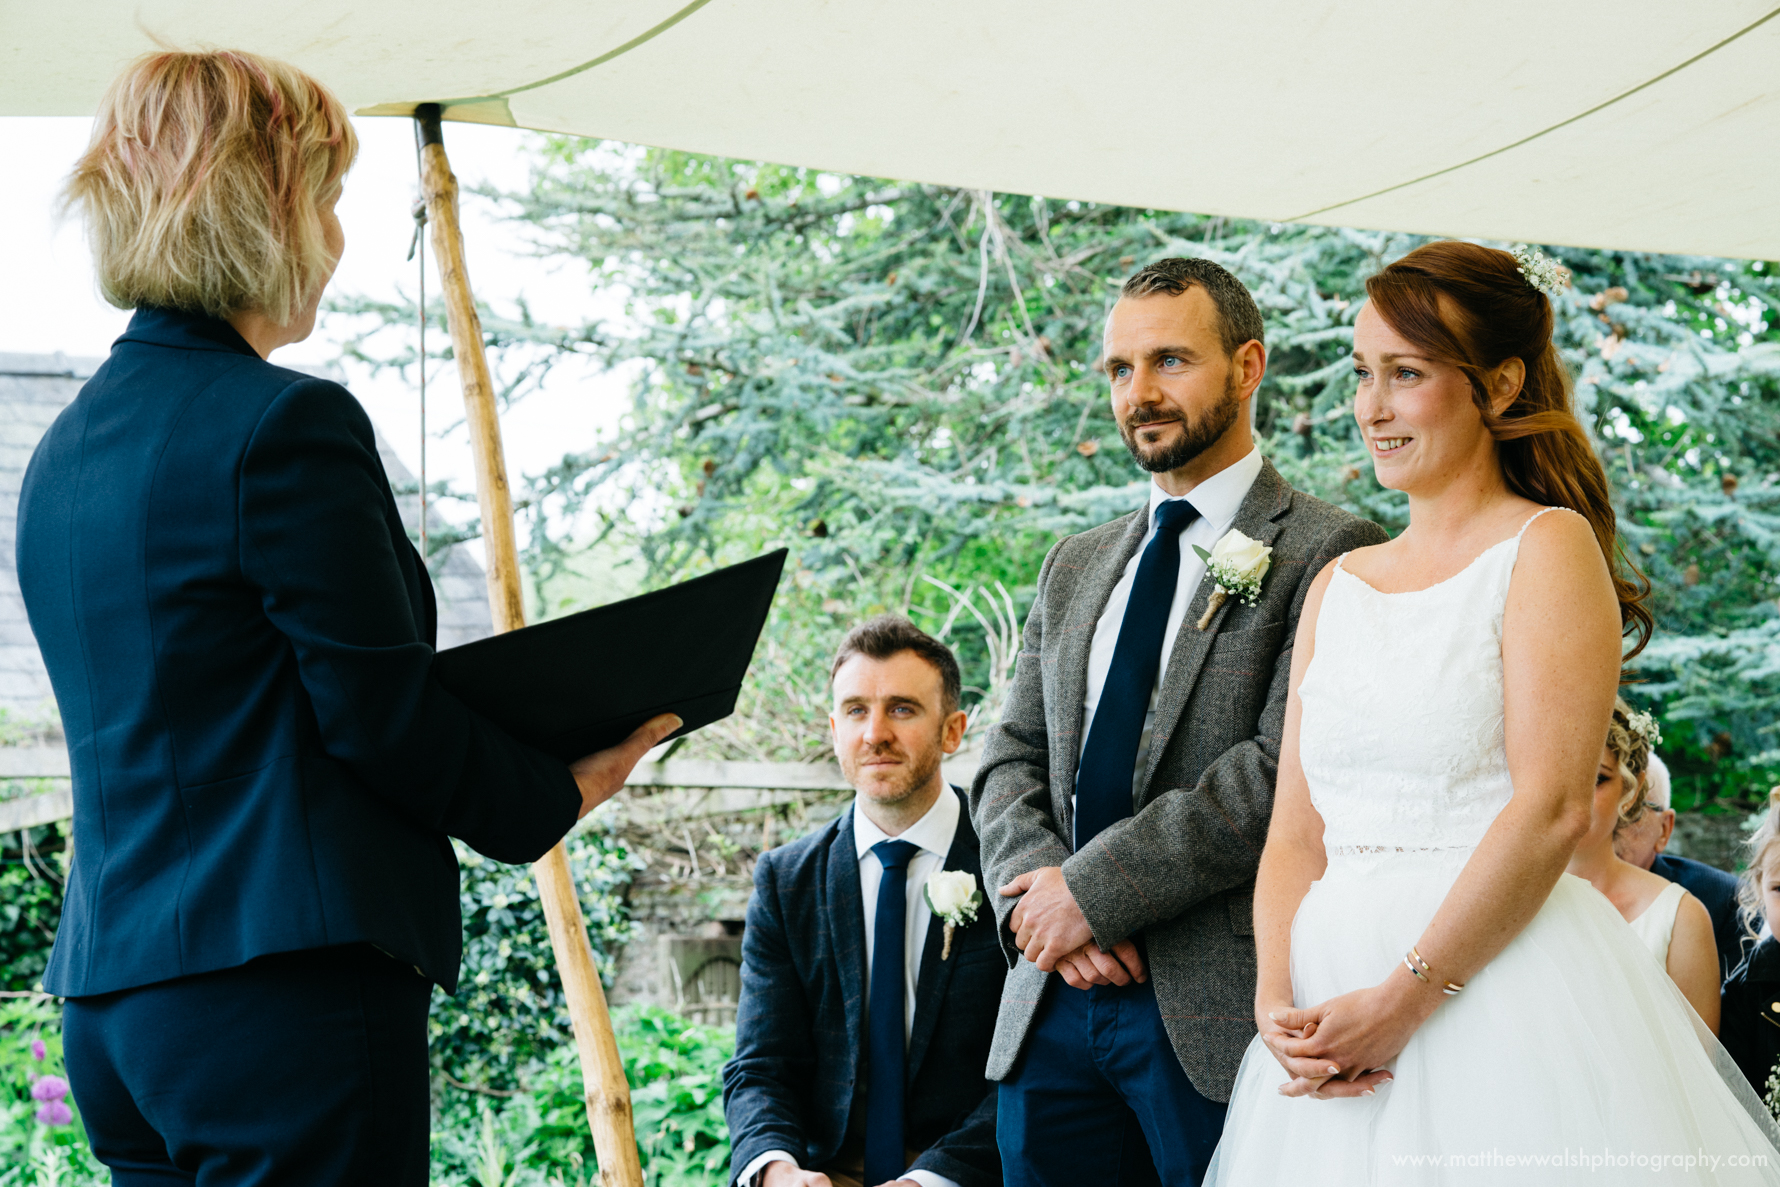 Making the wedding vows